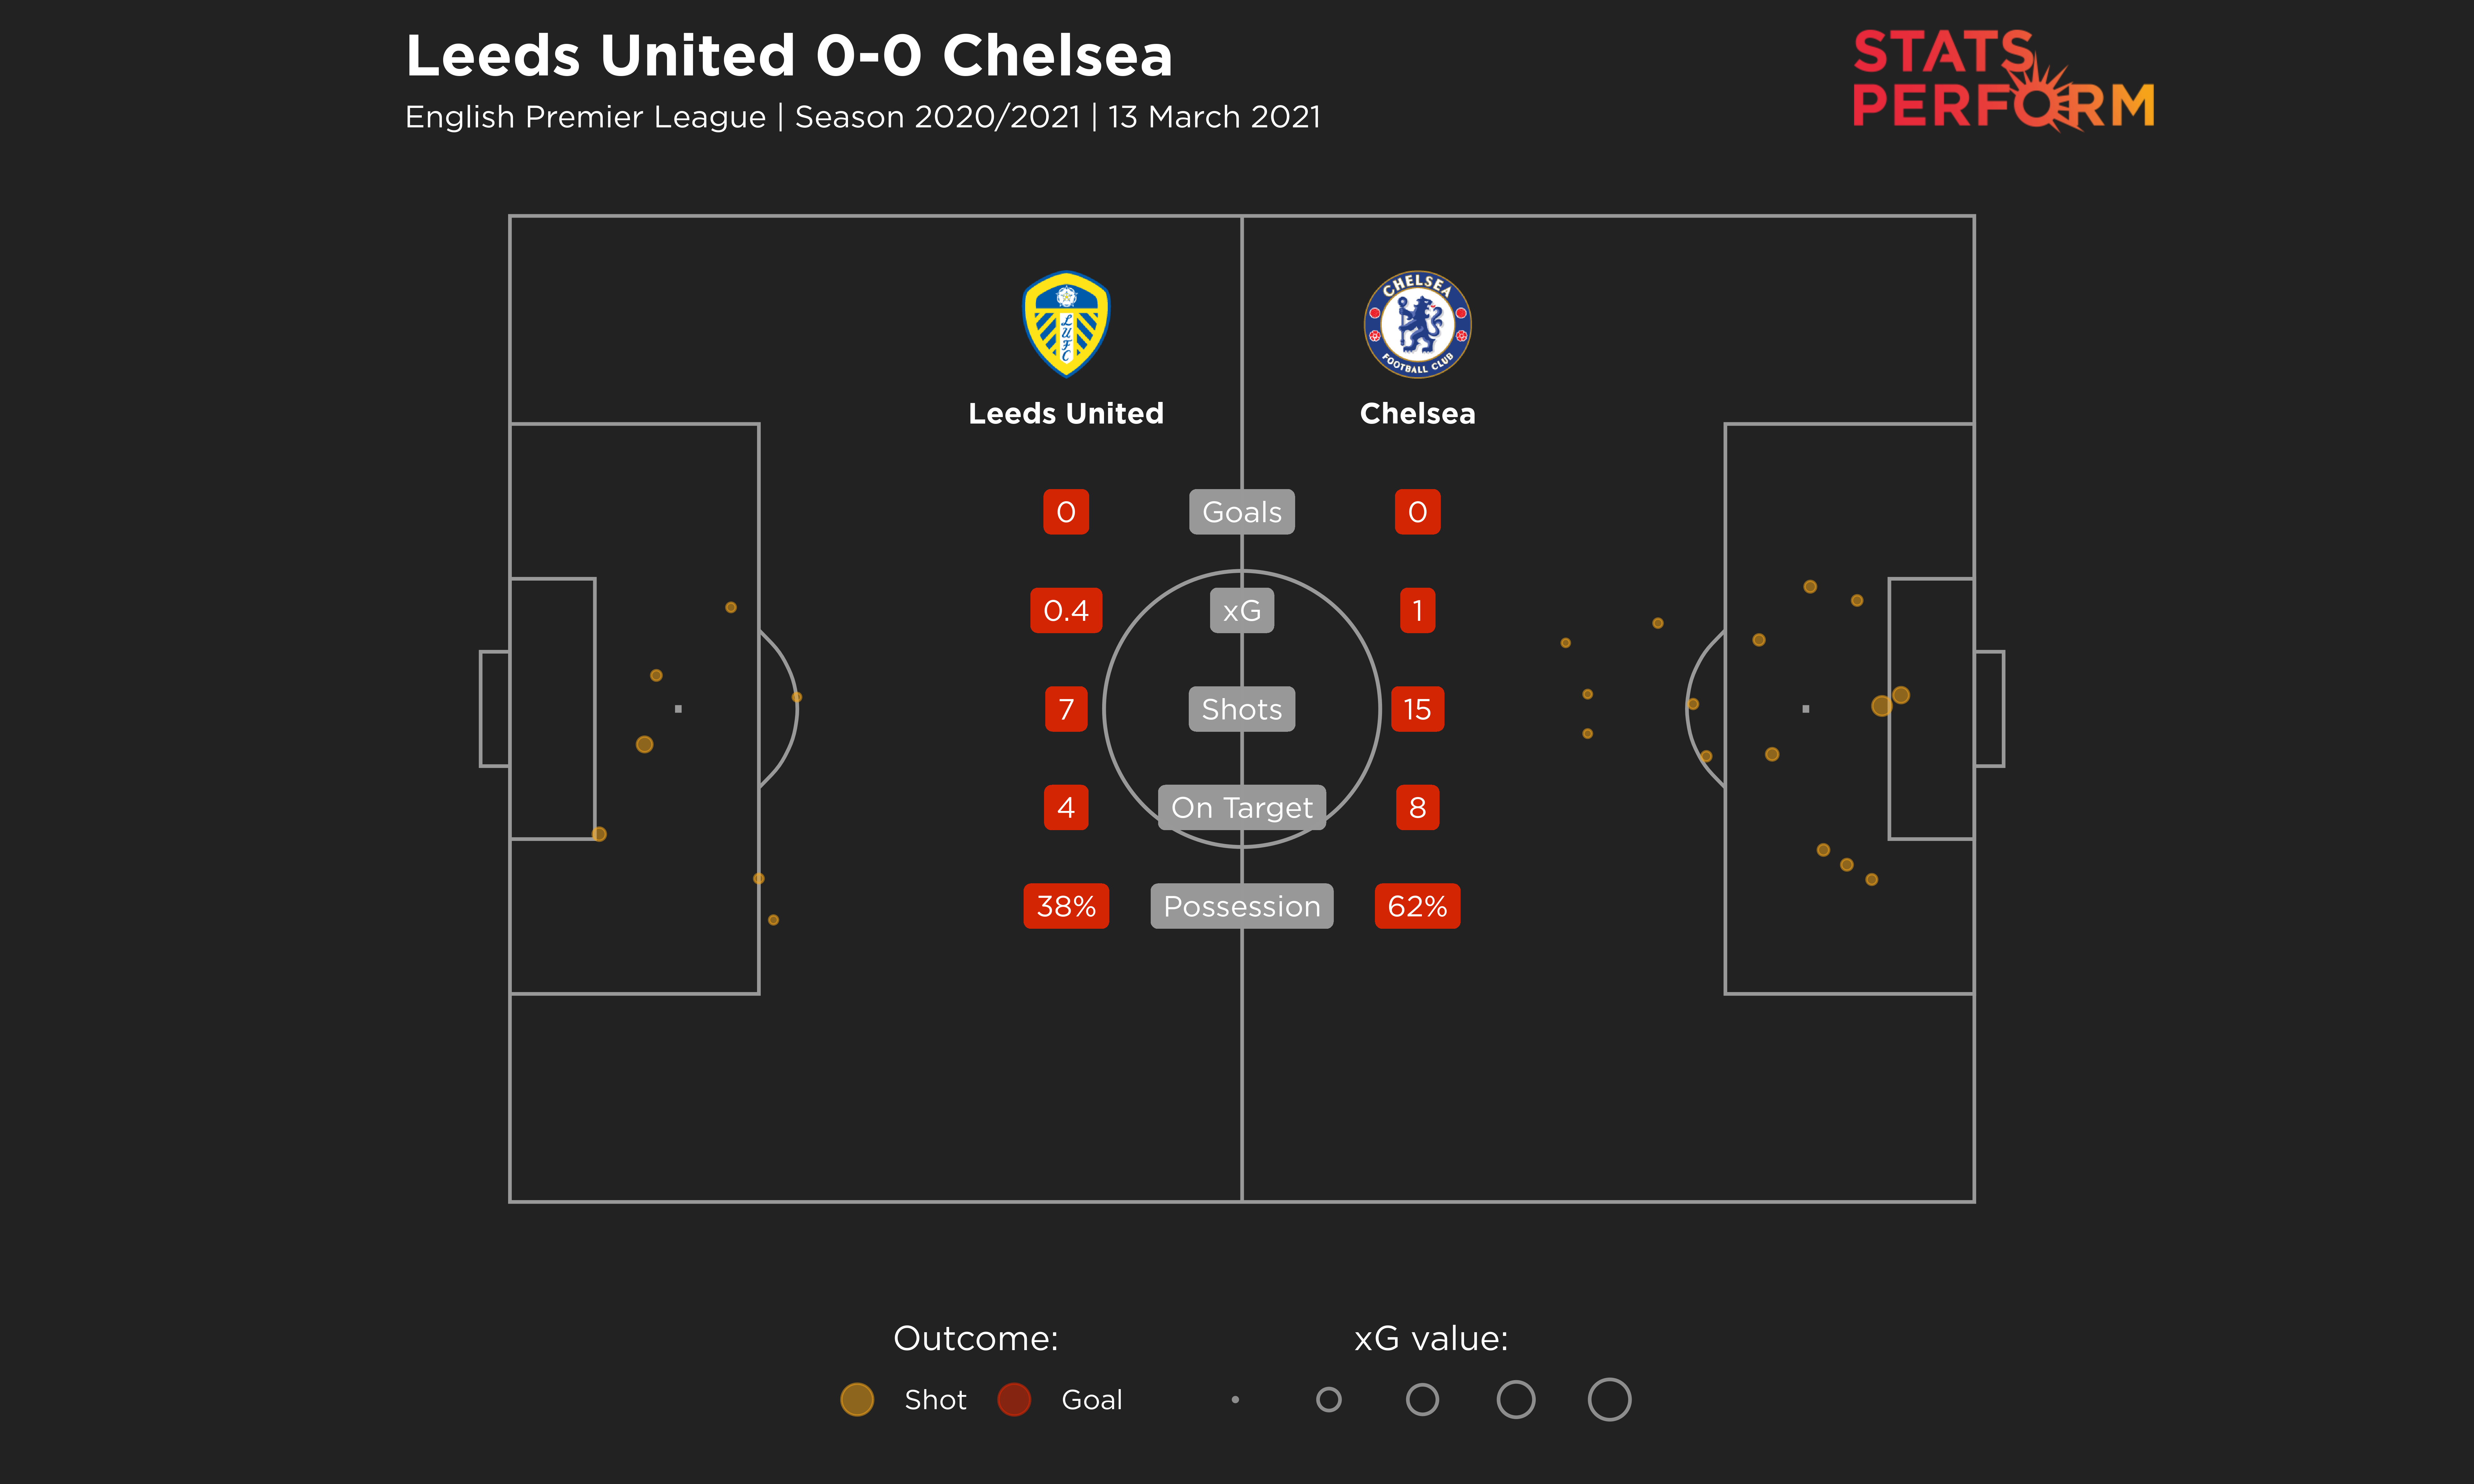 Leeds United 0-0 Chelsea expected goals